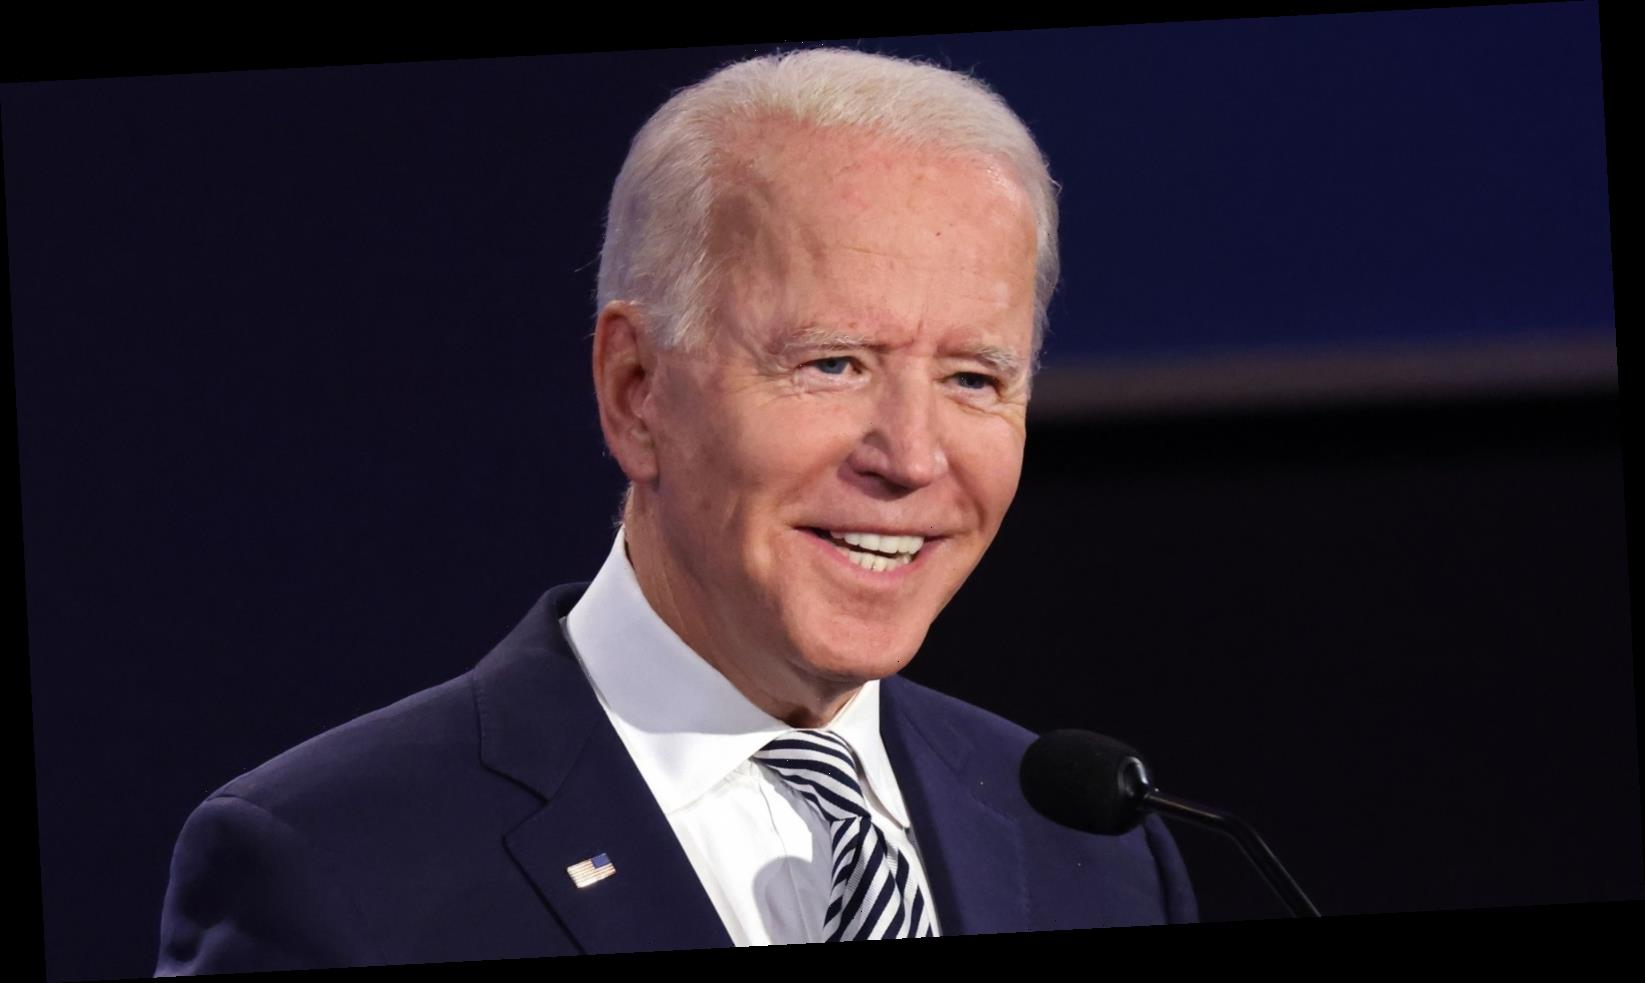 What Biden's body language revealed at the first debate, according to an expert